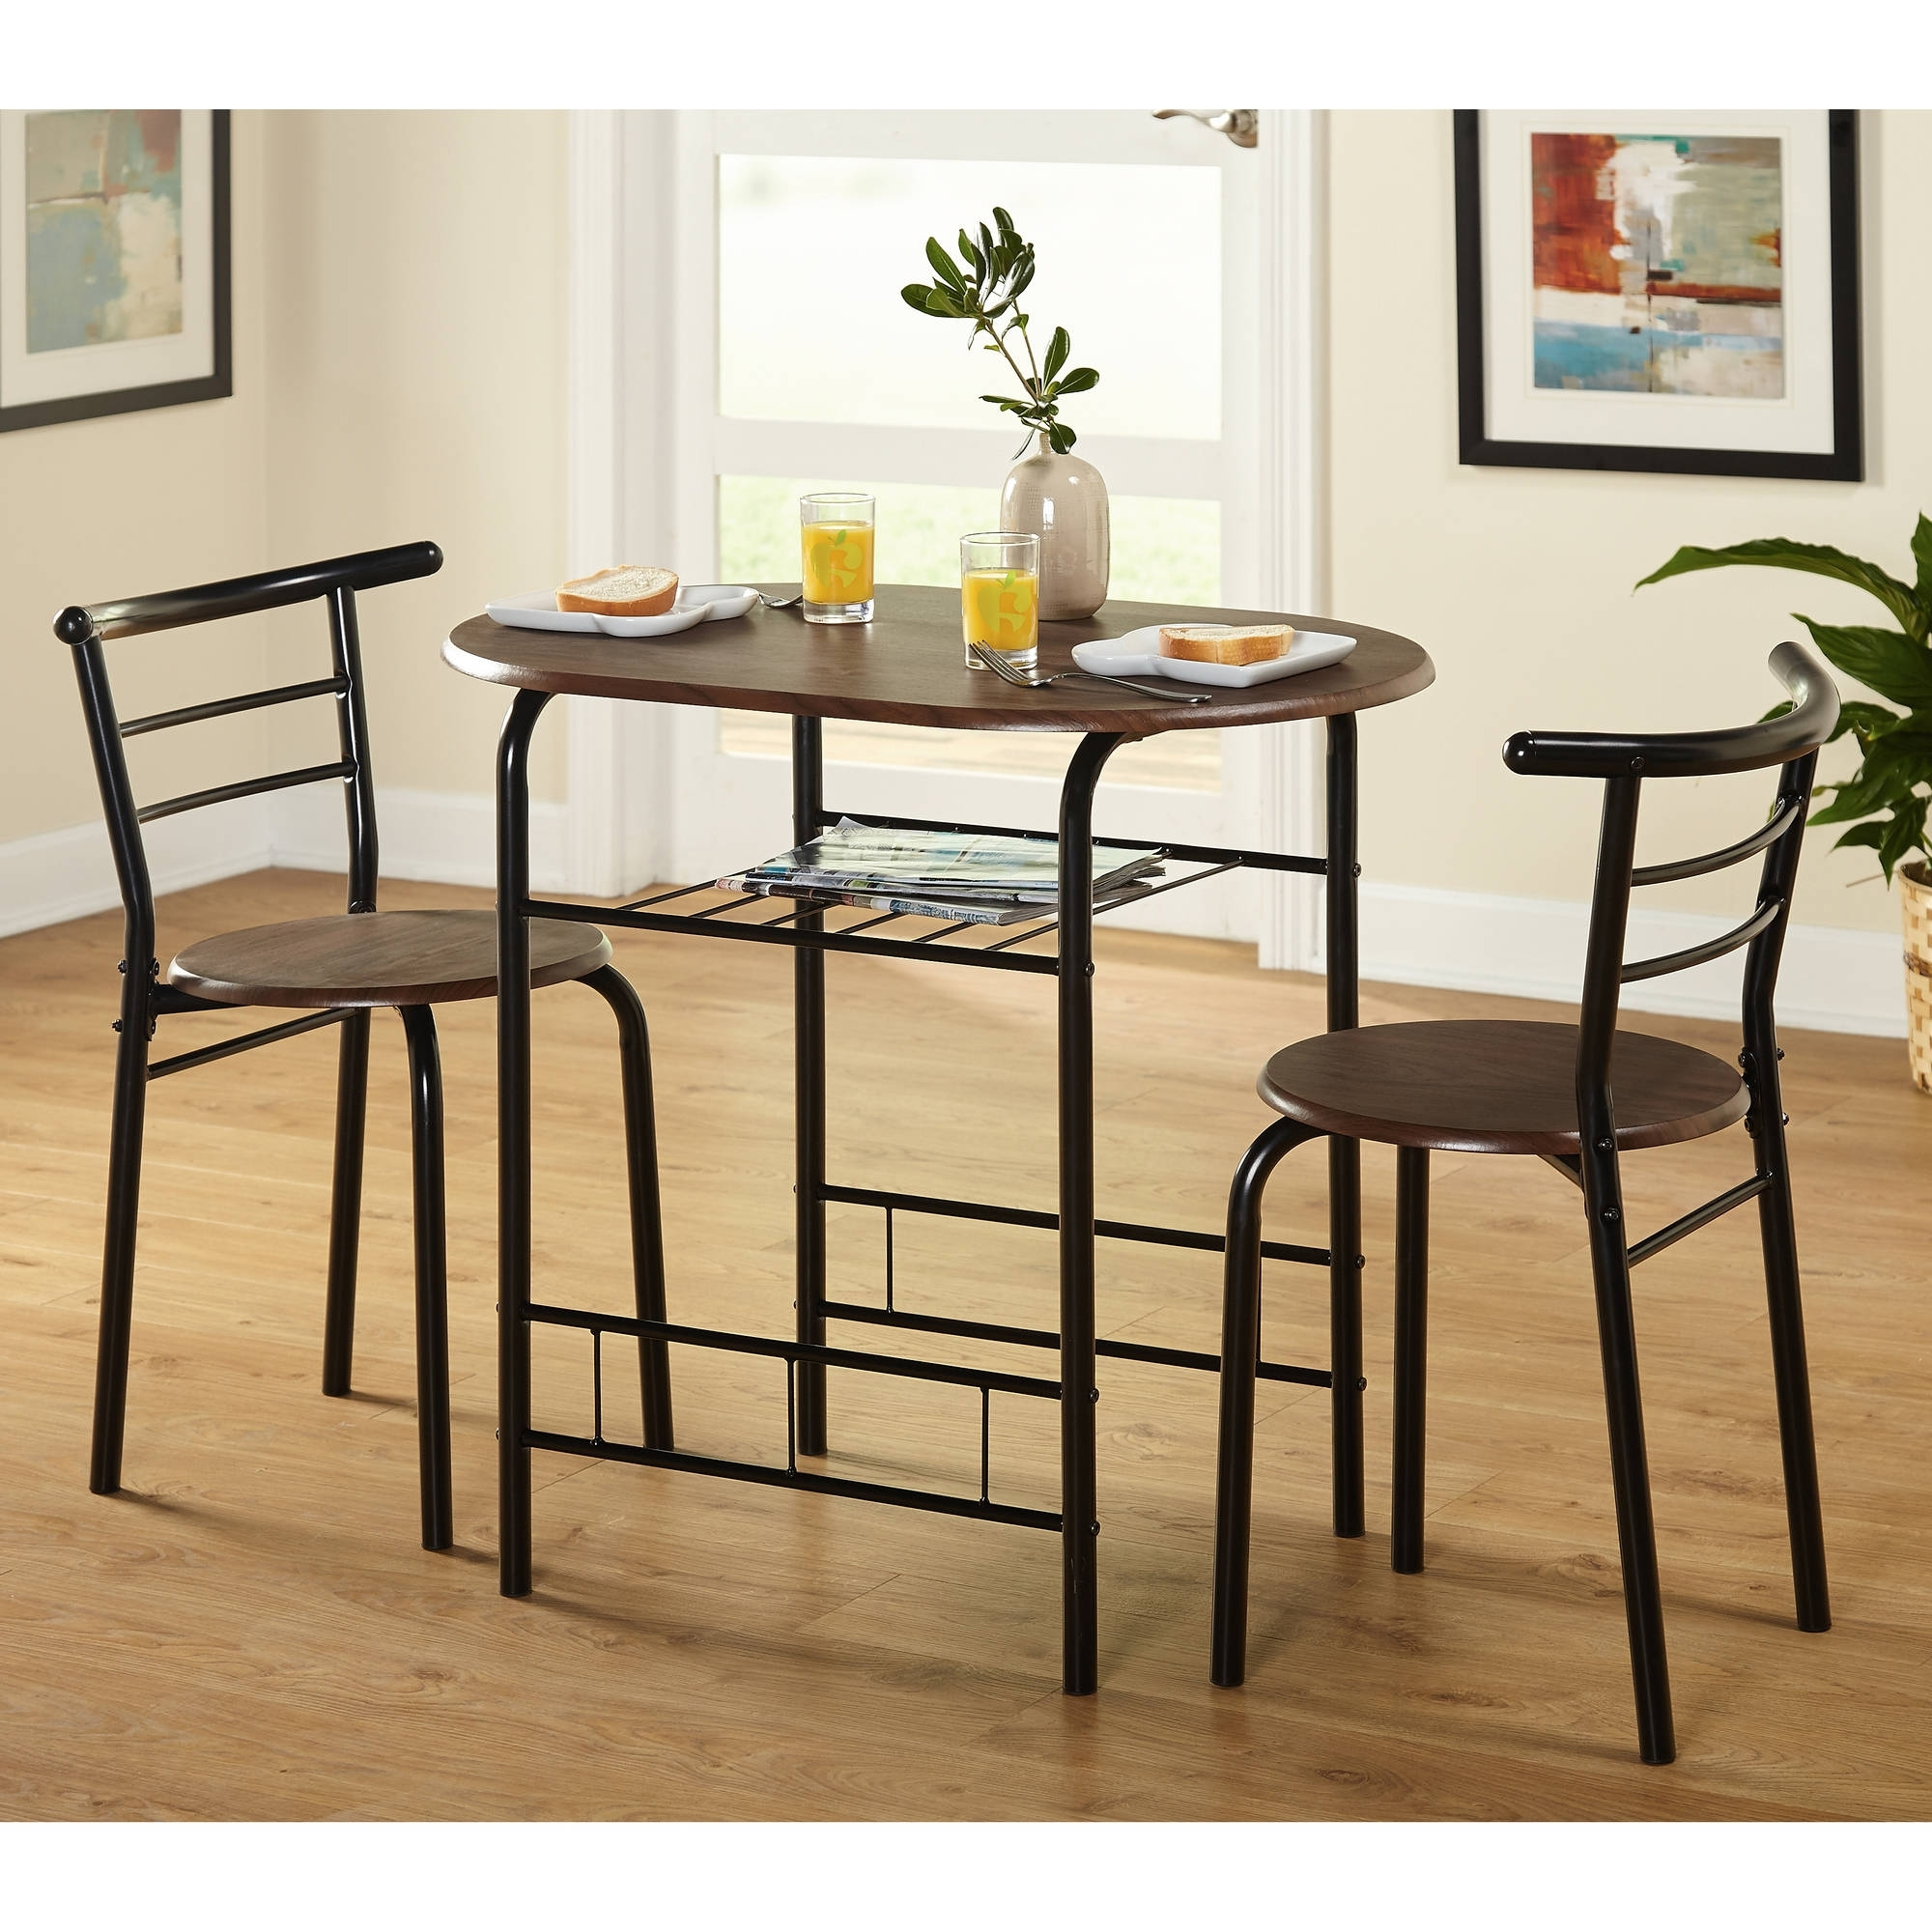 Popular Compact Dining Sets In Tms 3 Piece Bistro Dining Set – Walmart (Gallery 11 of 25)